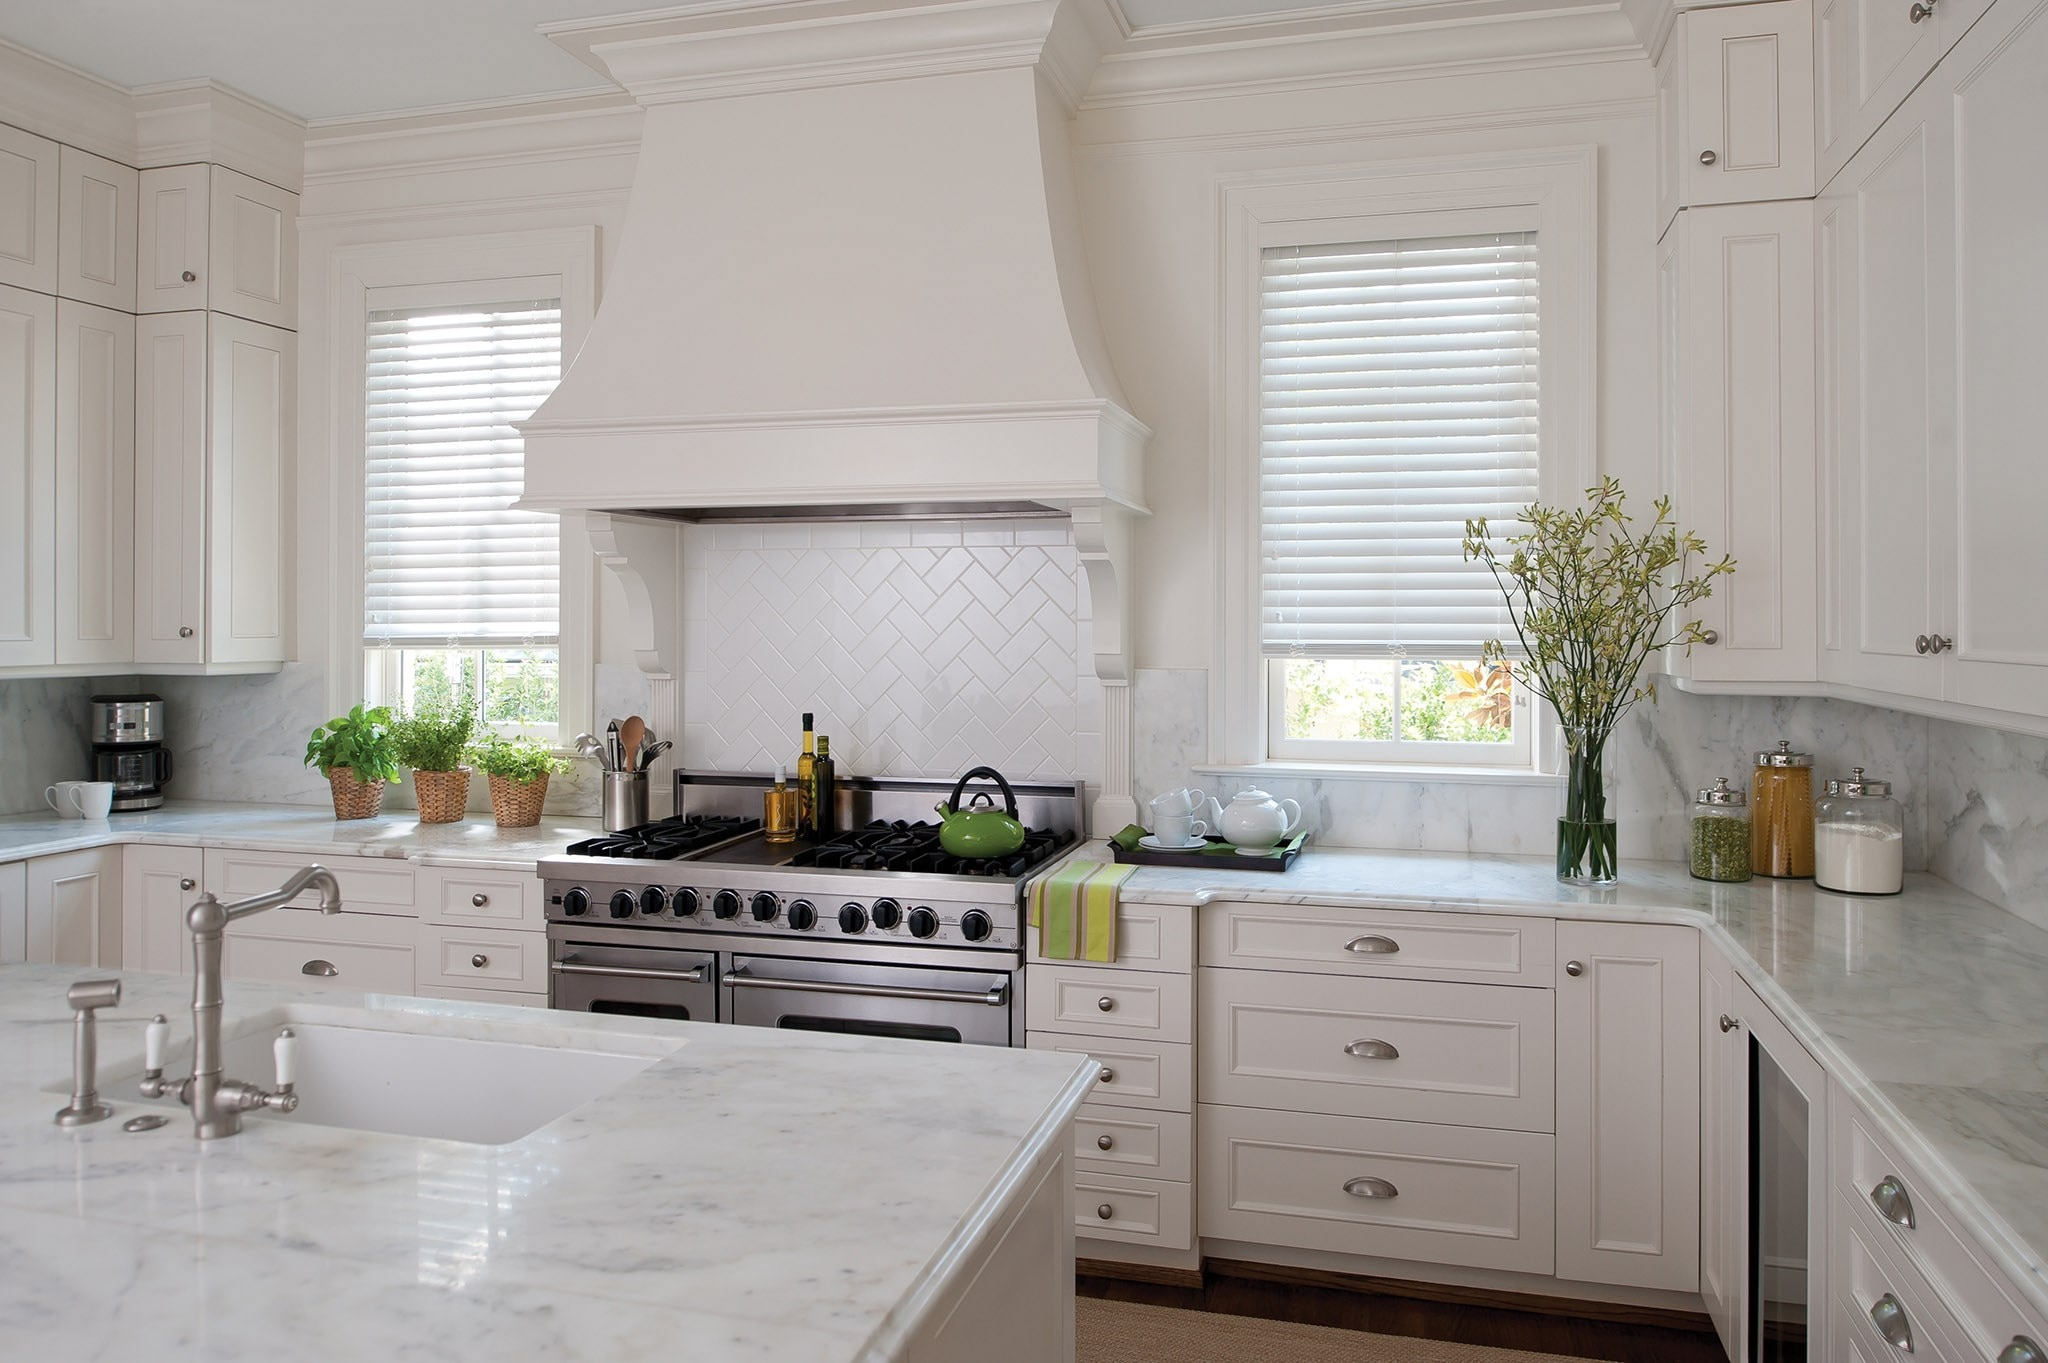 LVC_FauxWood_Classic_2in_White_Kitchen.jpg